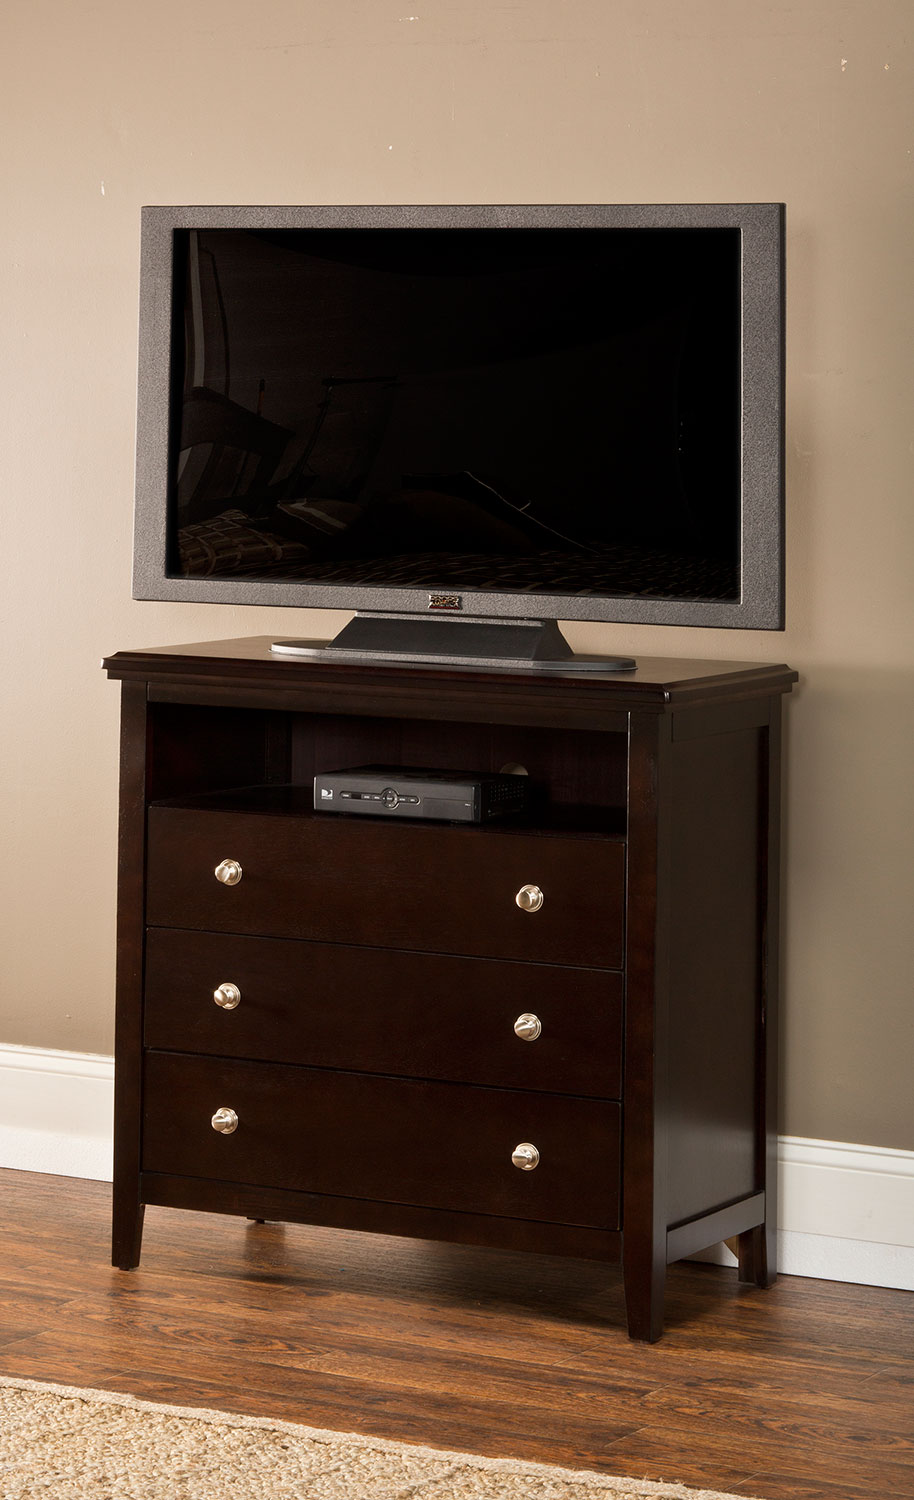 Hillsdale Metro TV Chest - Dark Espresso